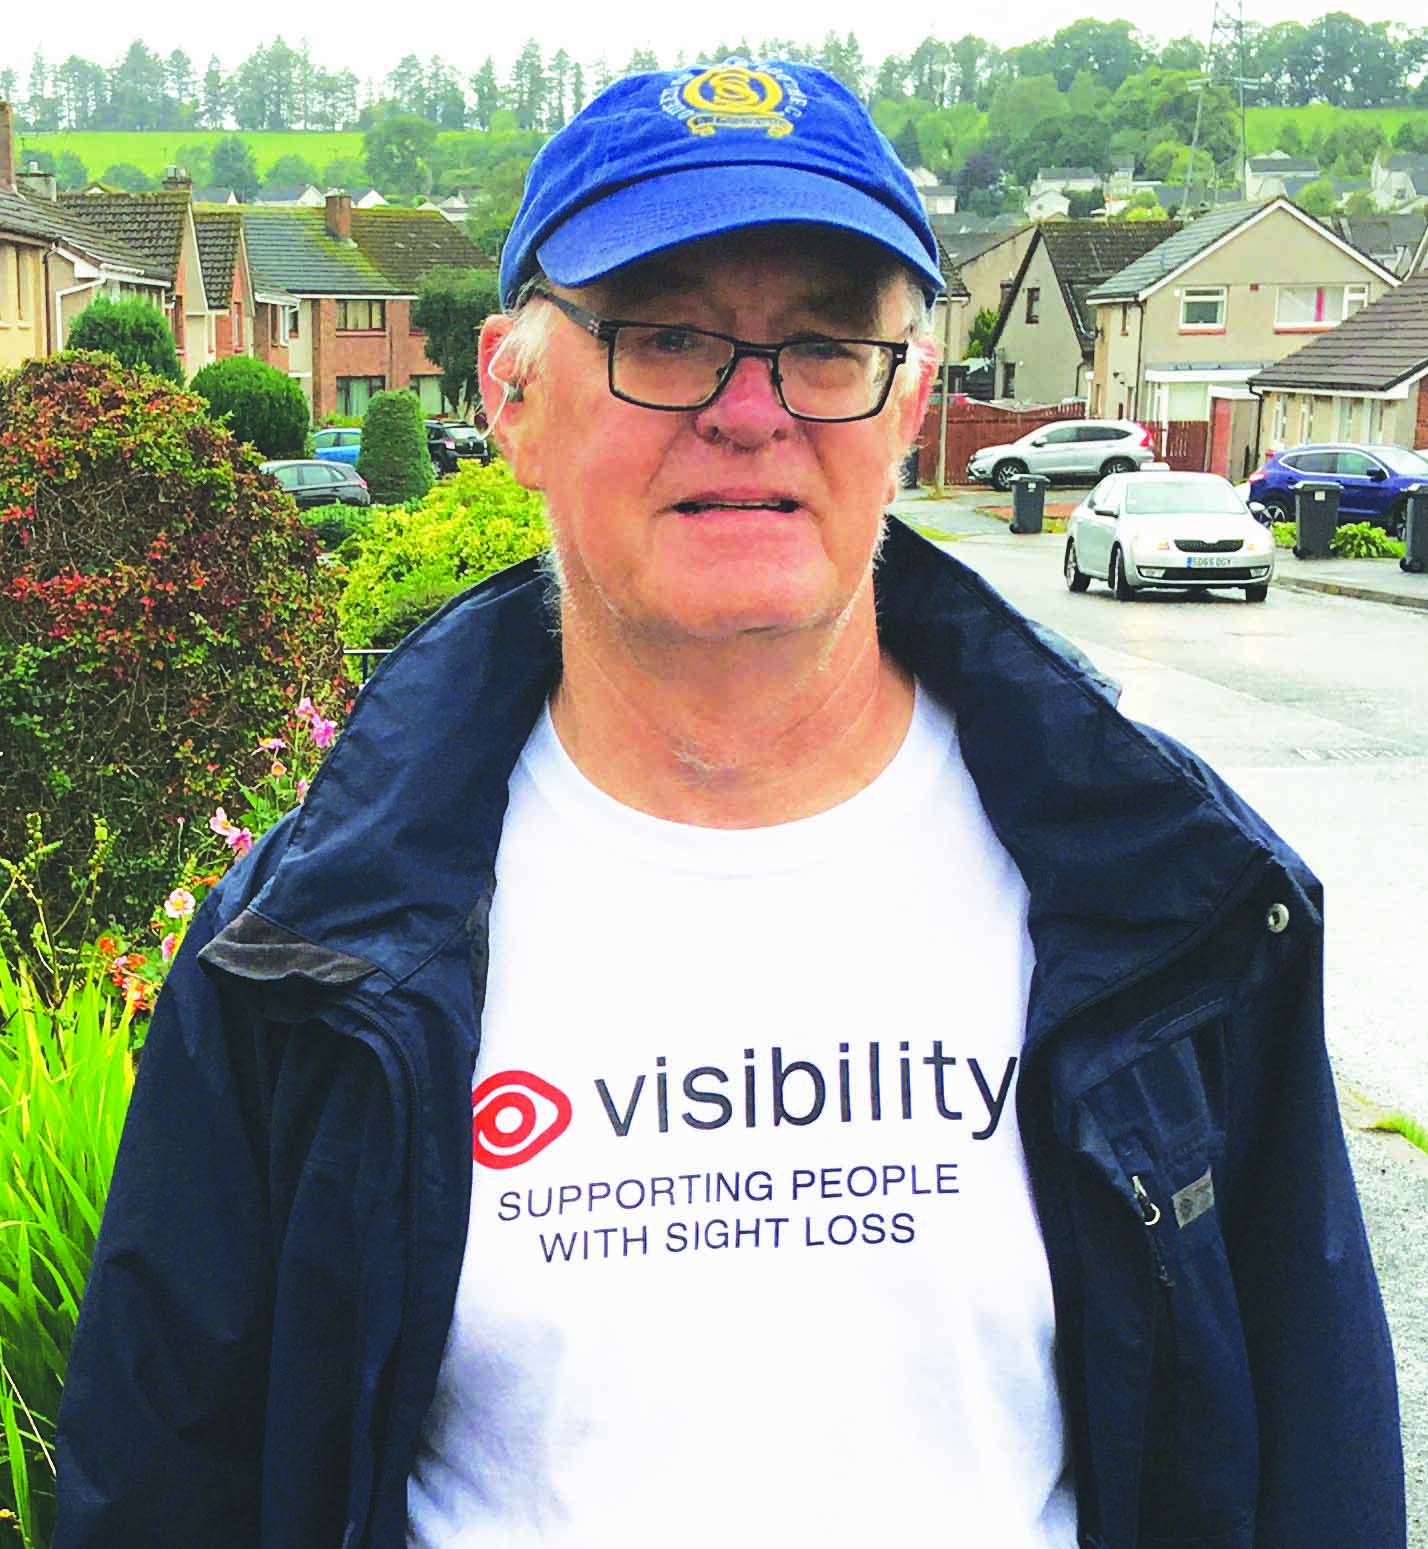 Colin completes Everest charity challenge